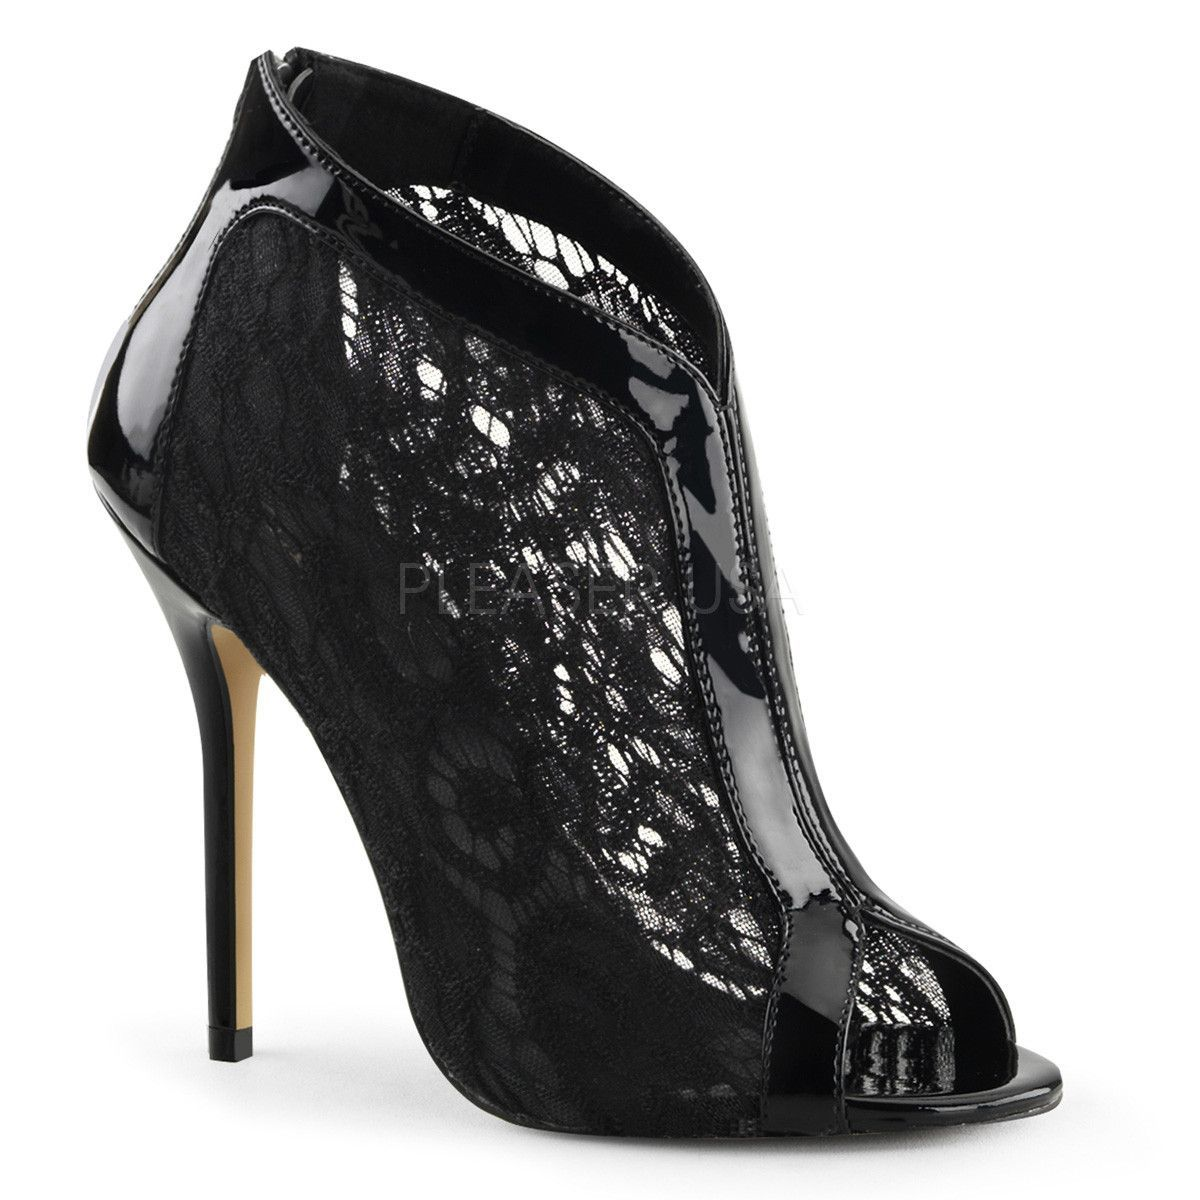 75224acdf71703 Black Fabulicious High Heel Pumps w  Lace Overlay